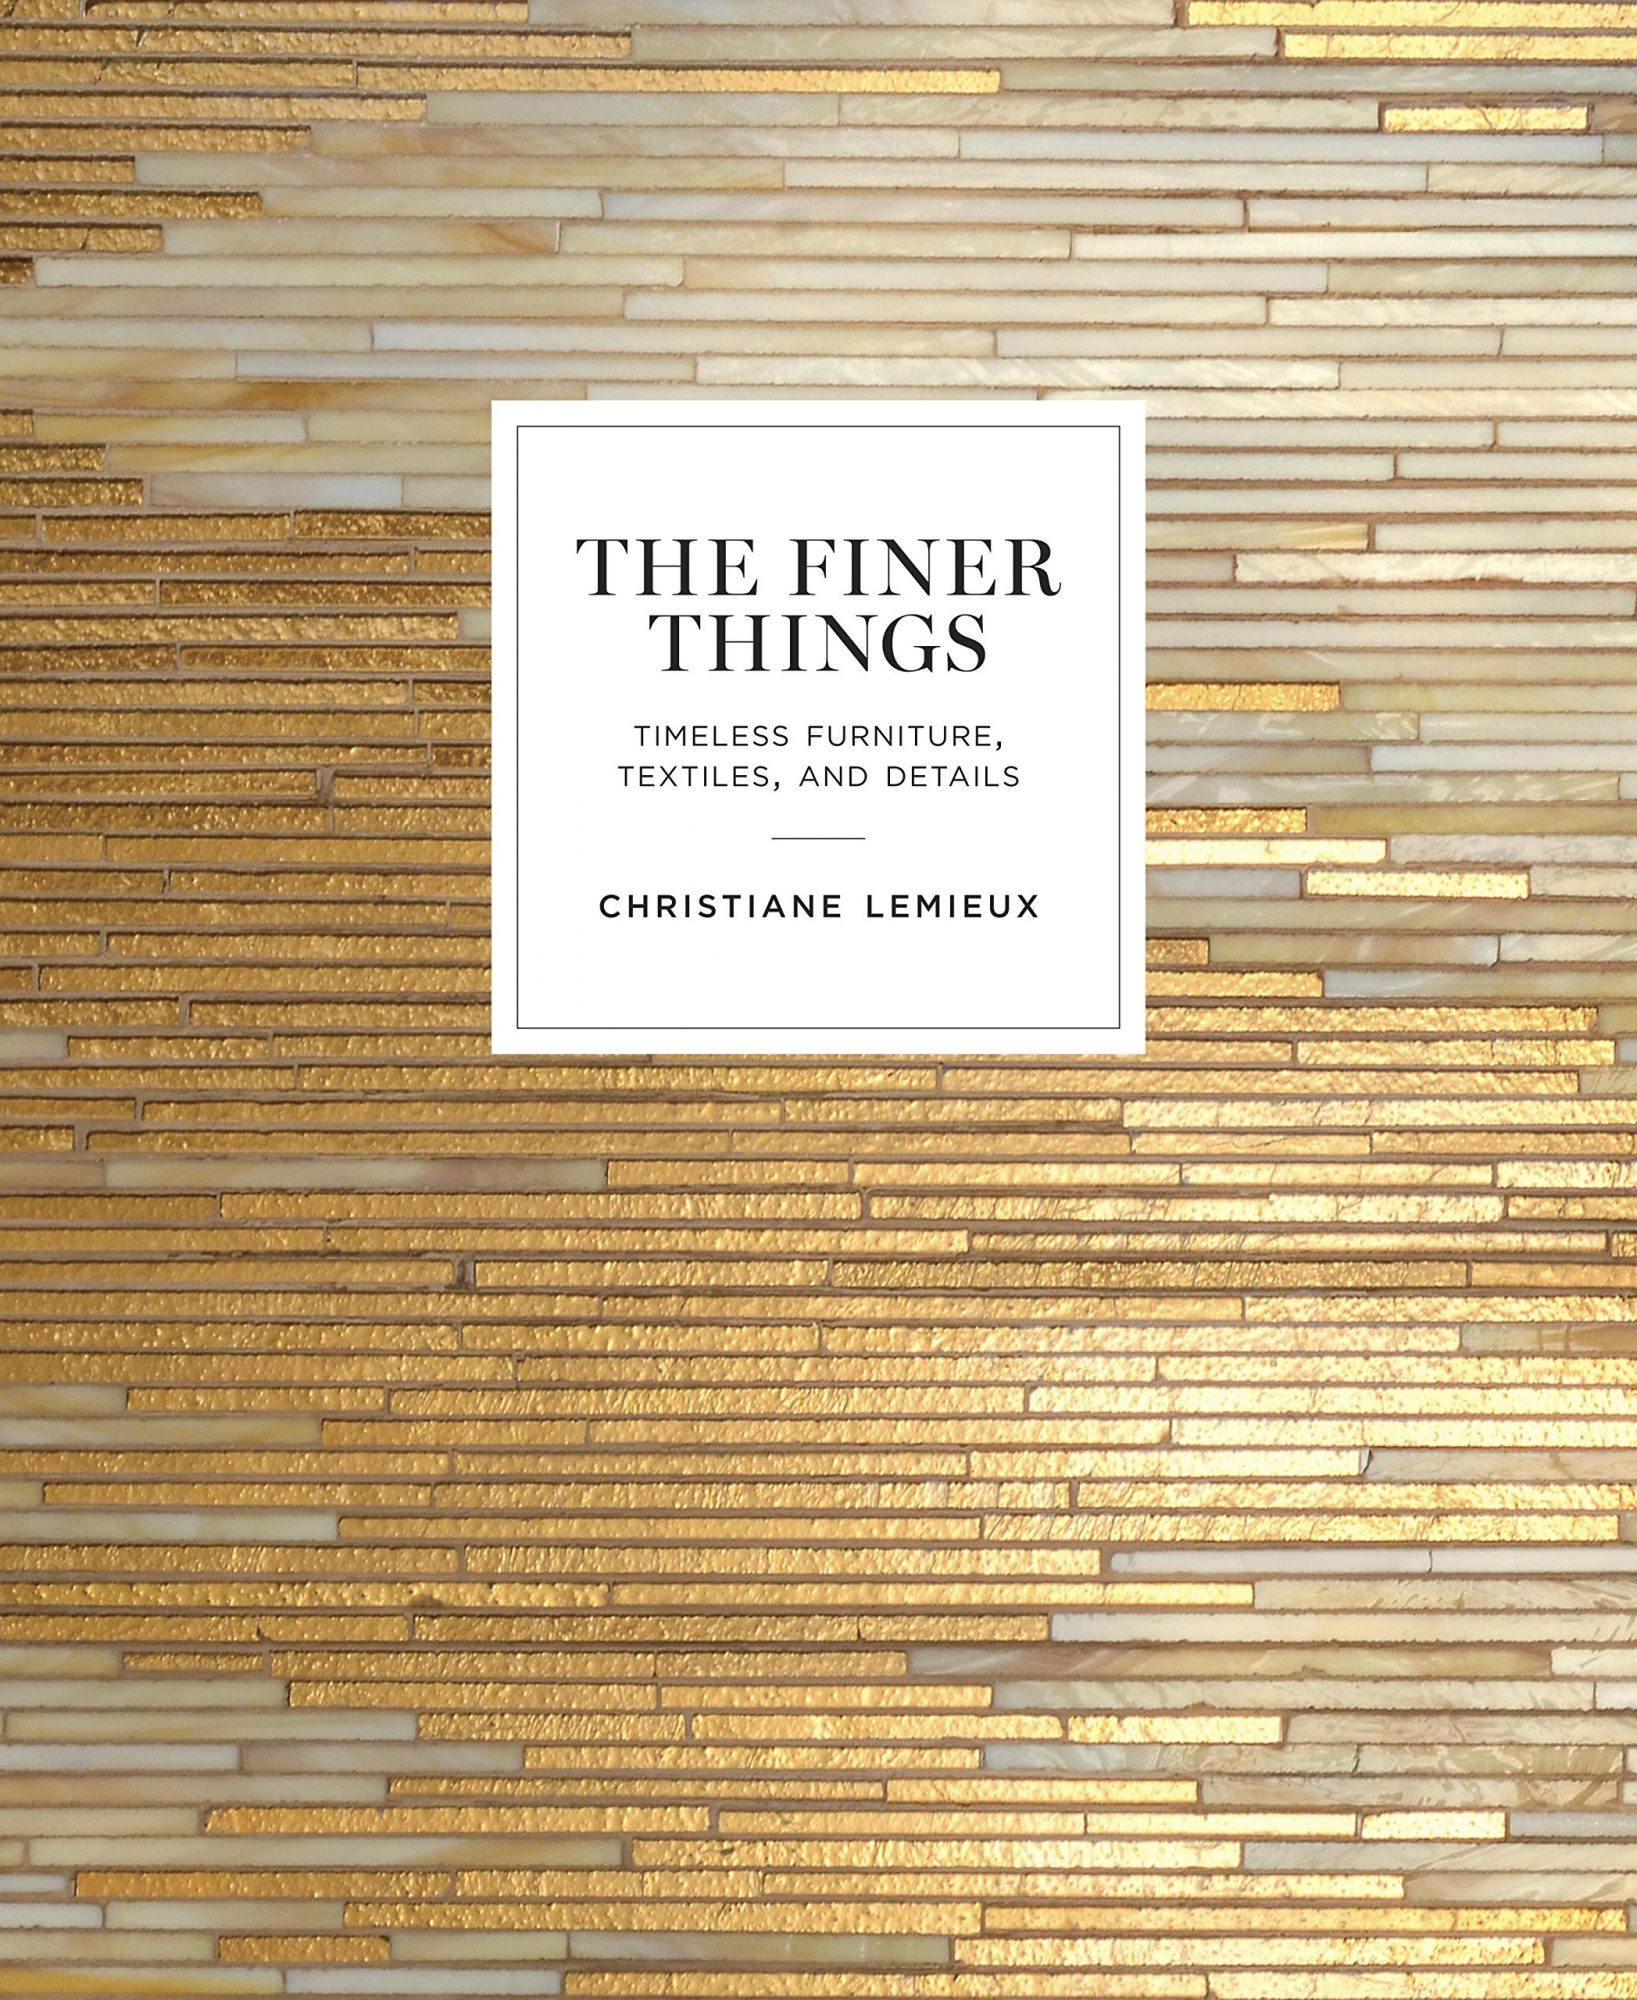 The Finer Things: Timeless Furniture, Textiles, and Details, by Christiane Lemieux